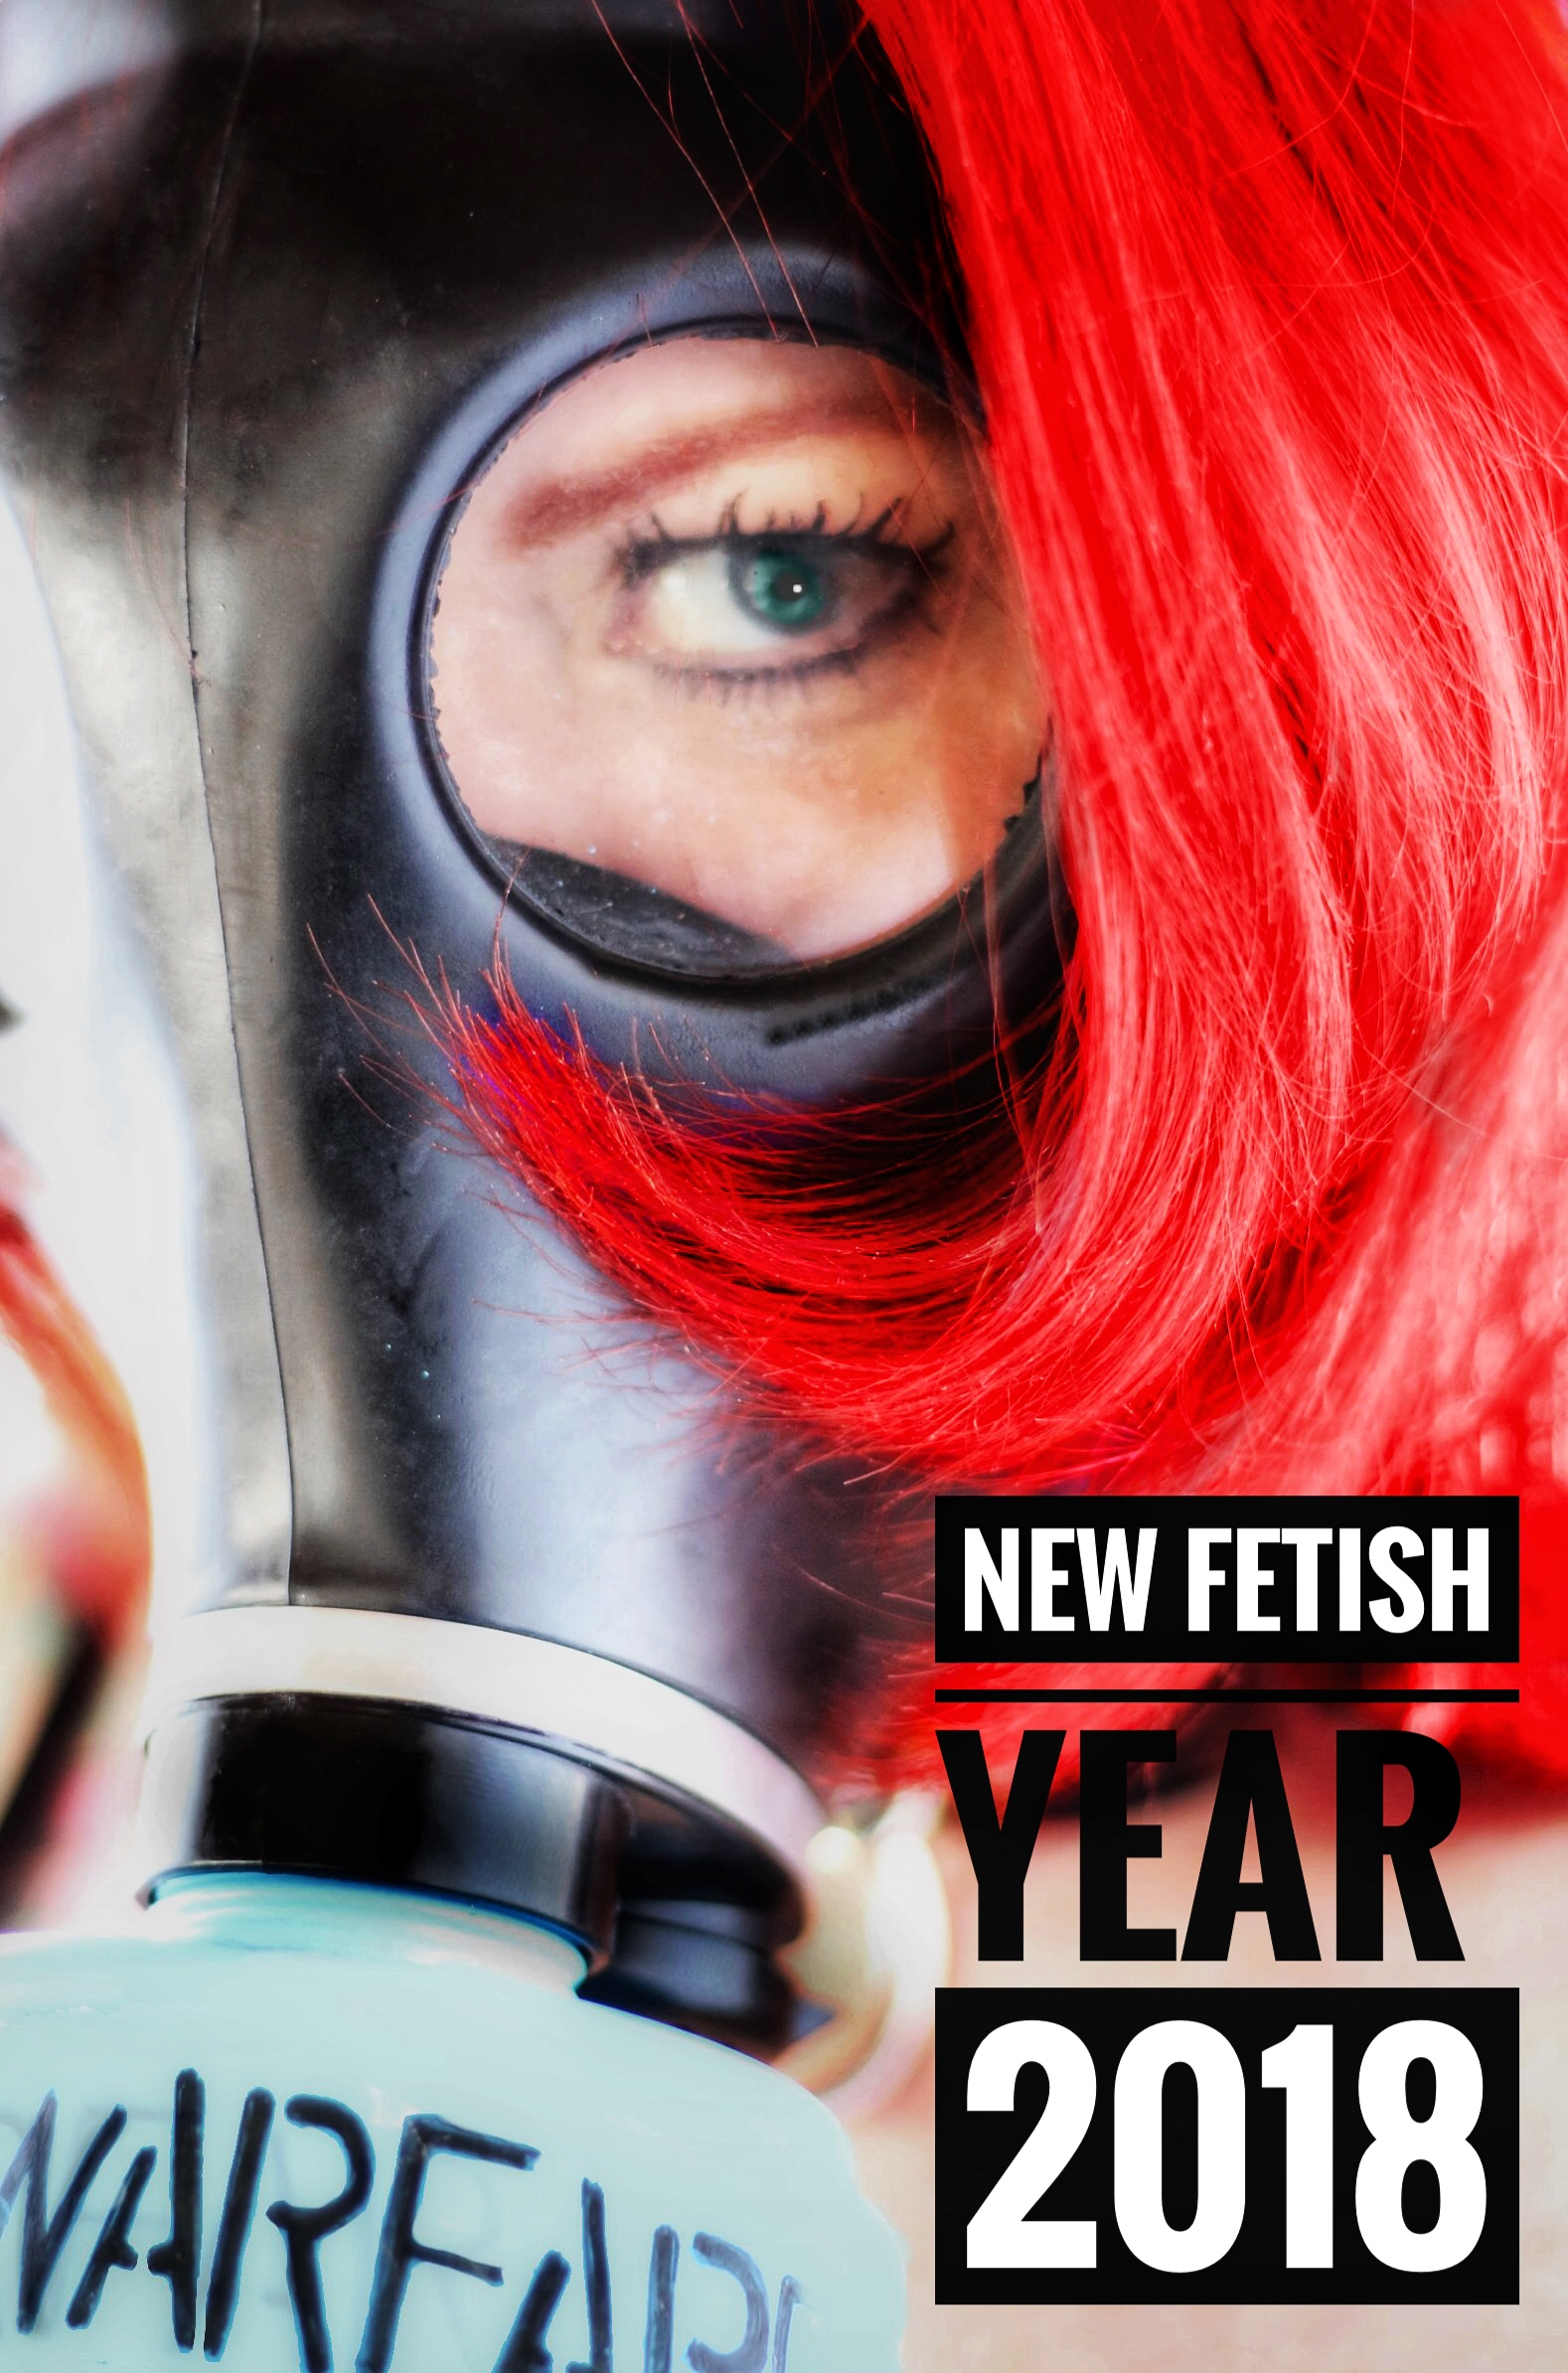 Warfare01  - lucille ballbuster new fetish year 2018